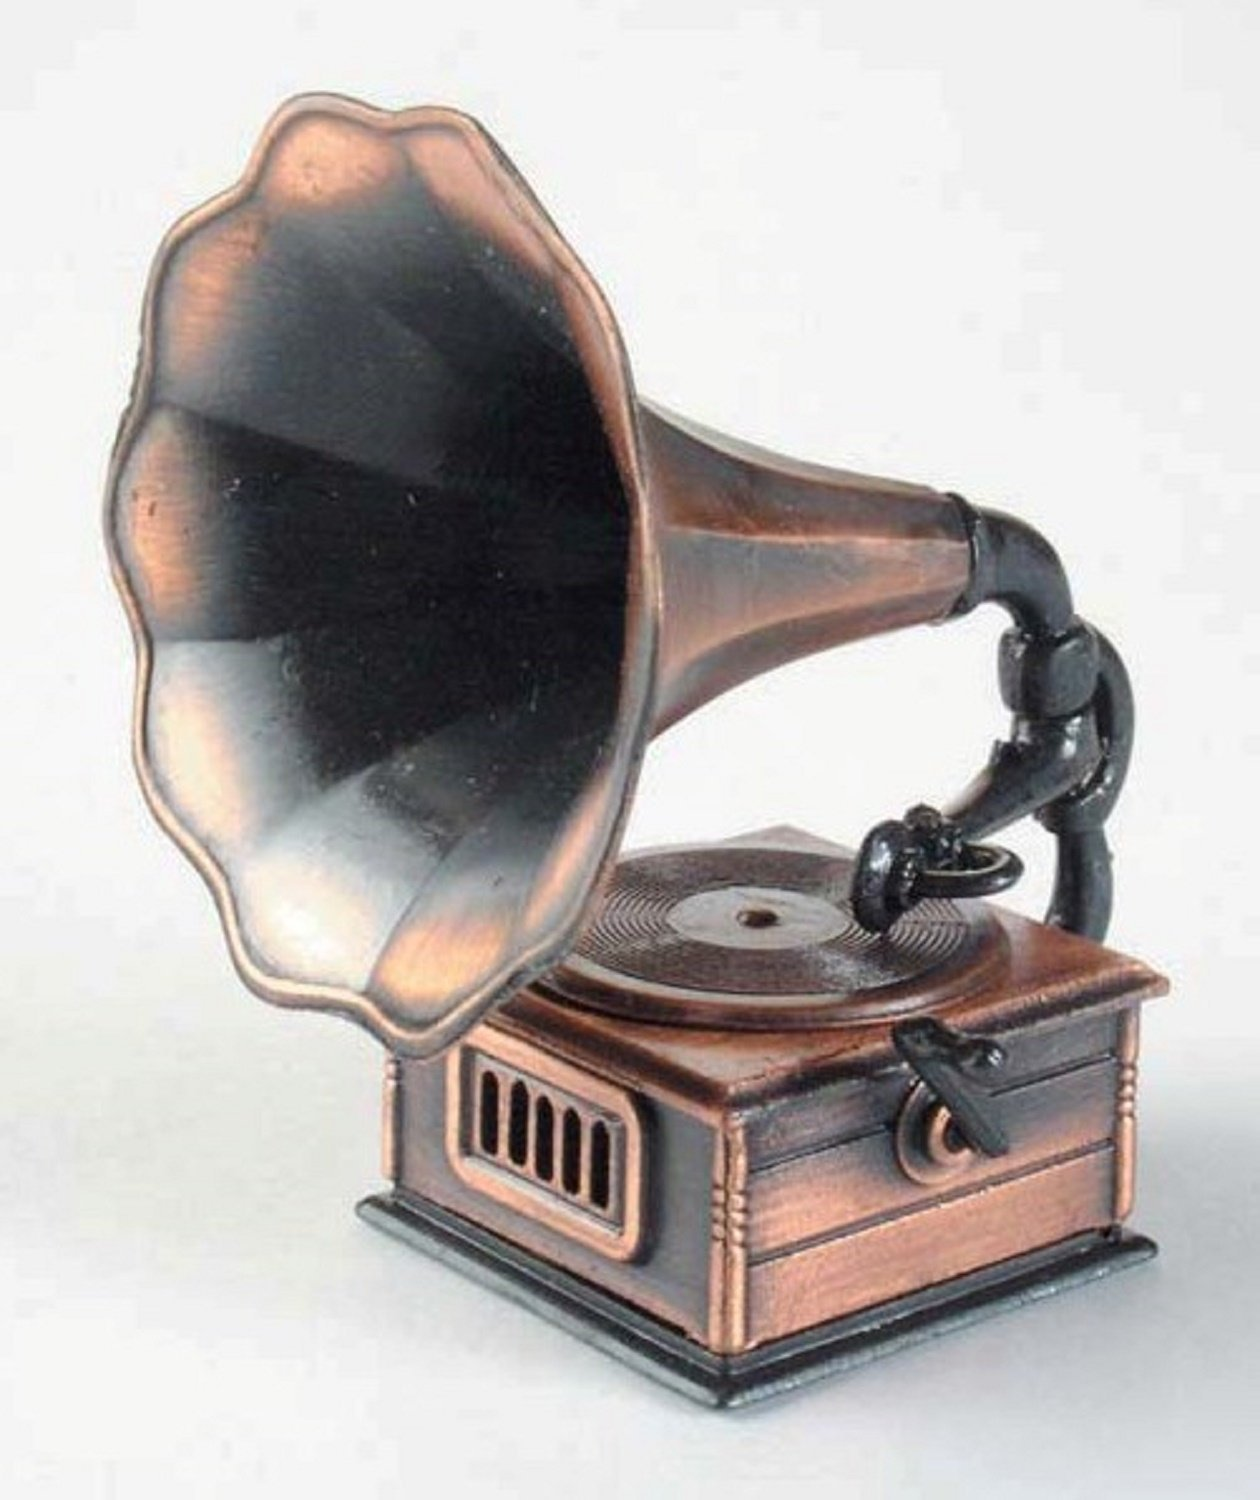 Old Time Gramophone Die Cast Metal Collectible Pencil Sharpener